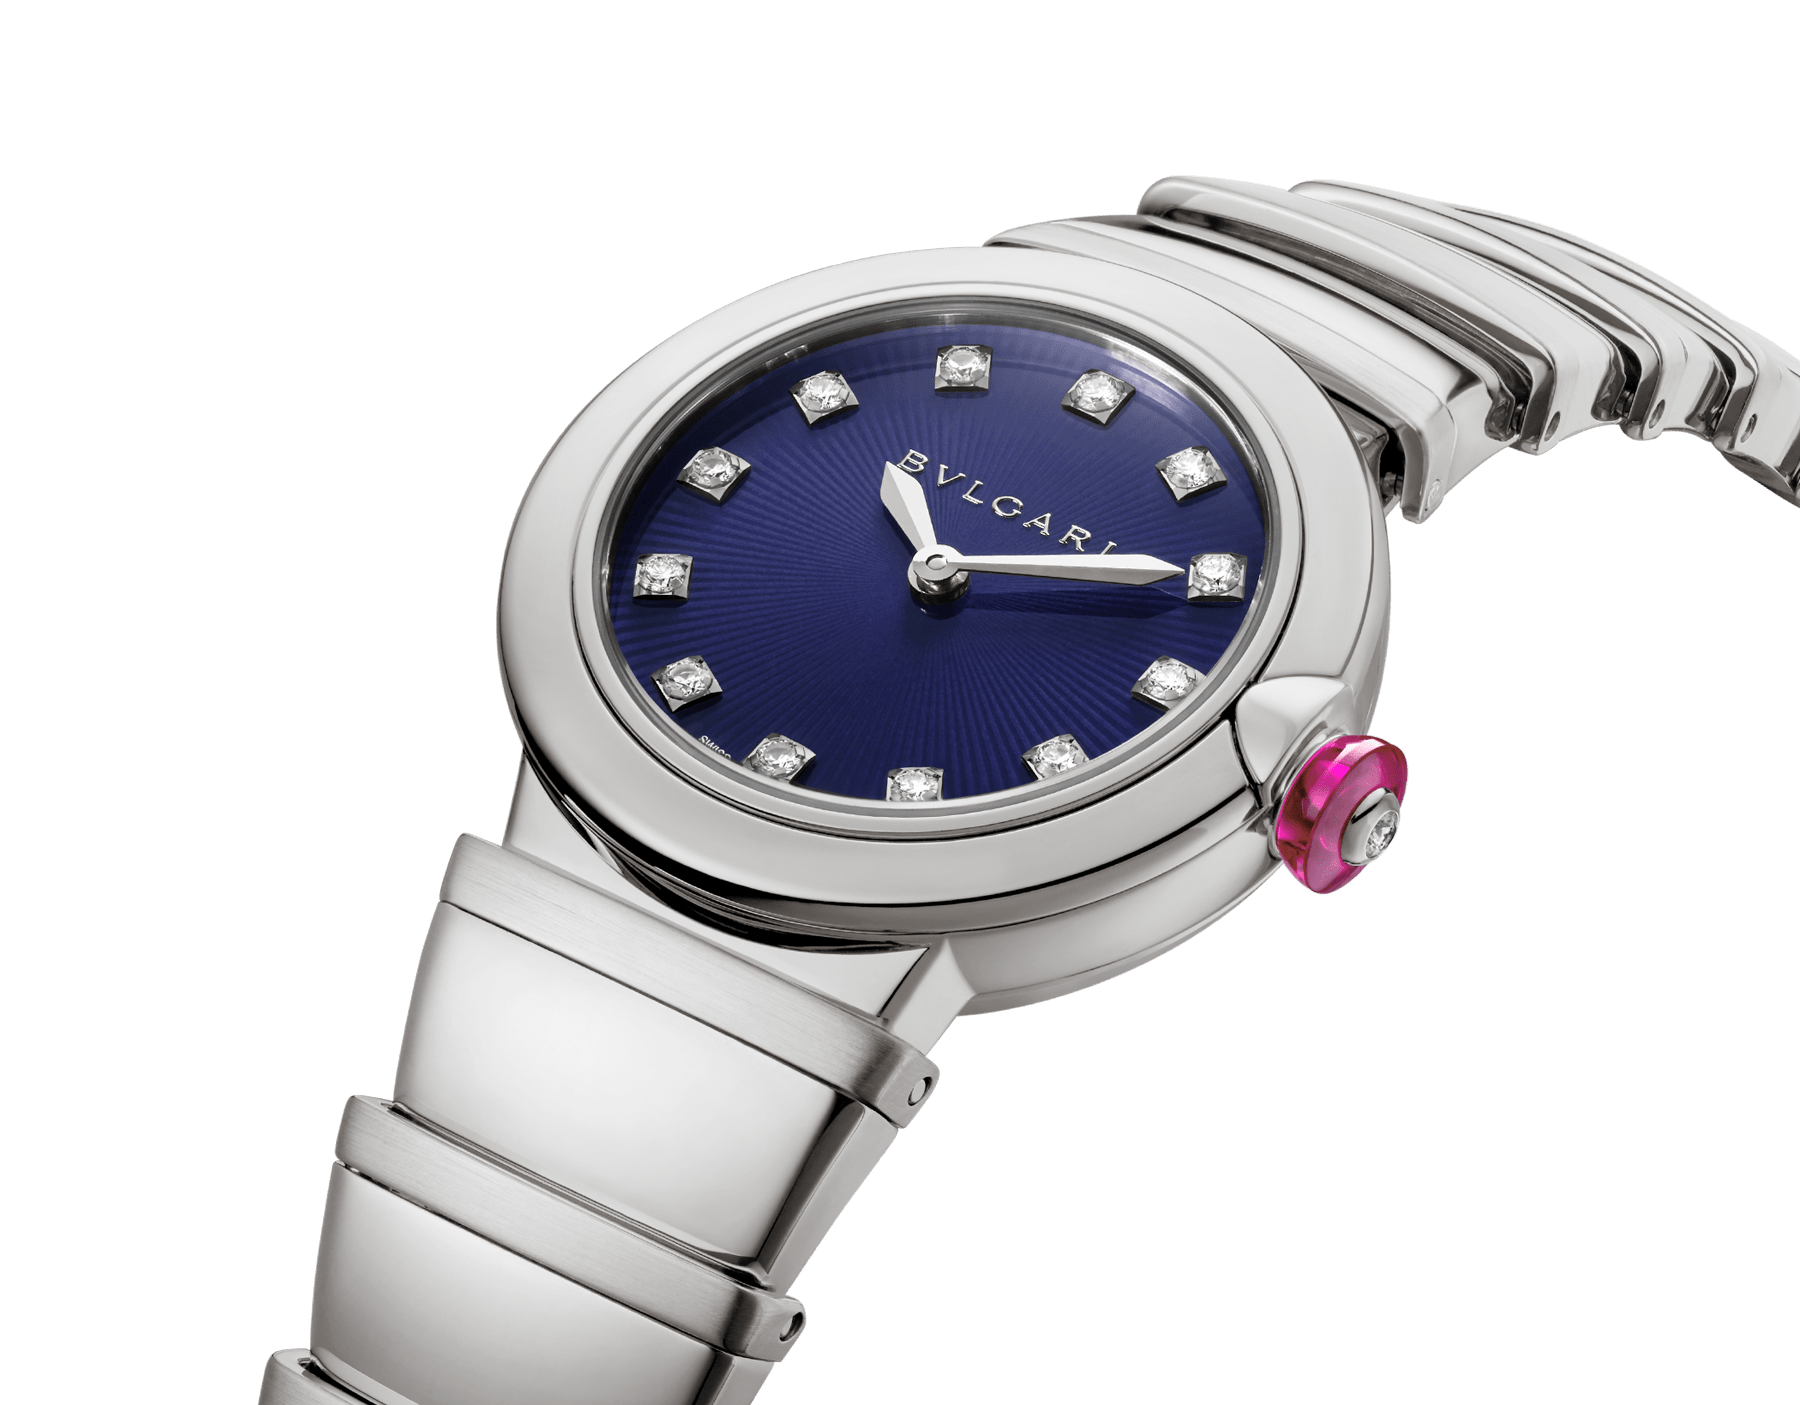 LVCEA watch in stainless steel case and bracelet, with blue dial and diamond indexes. 102568 image 2